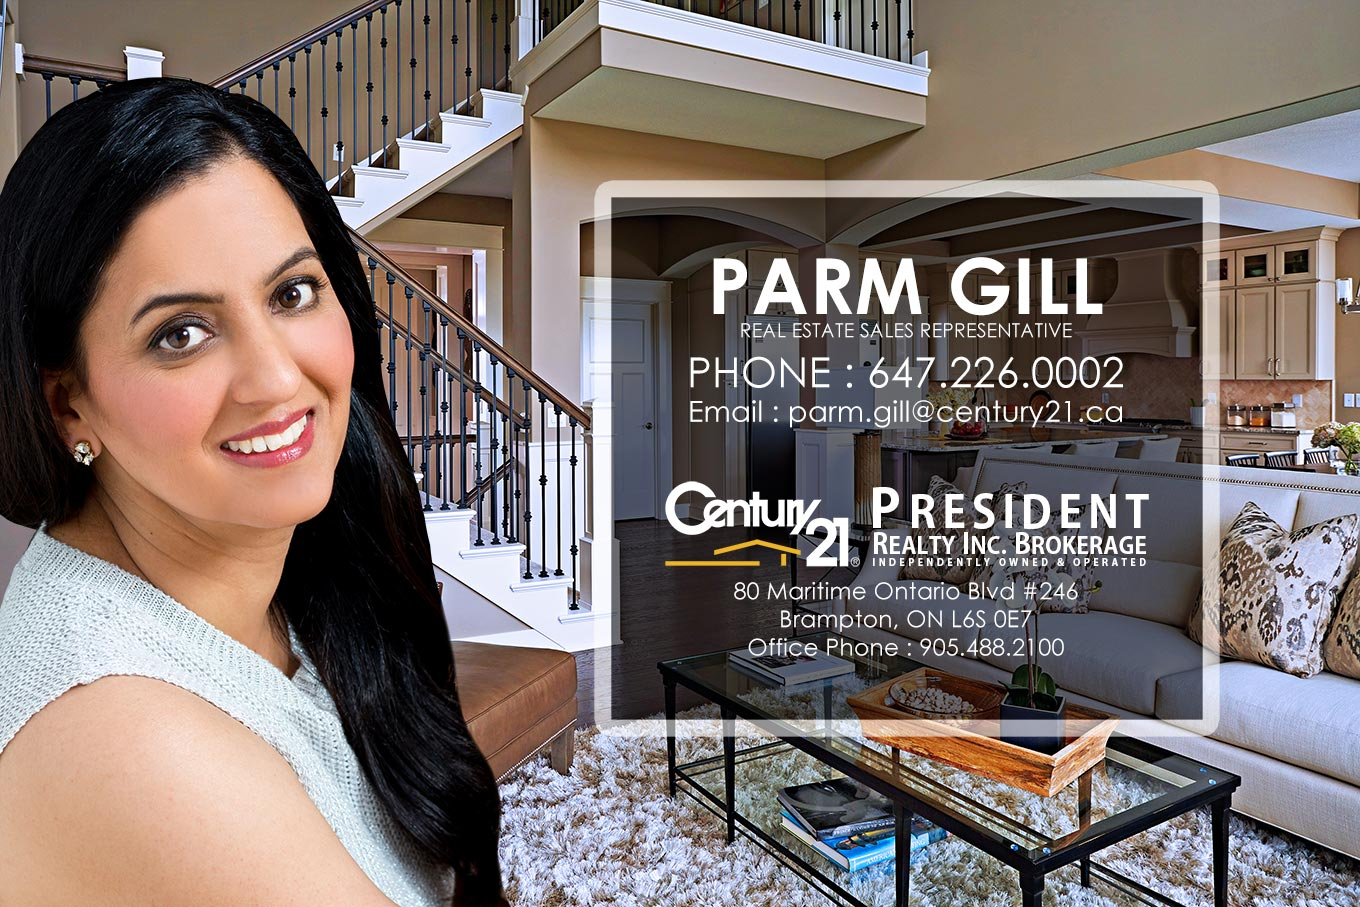 Parm Gill Contact Information